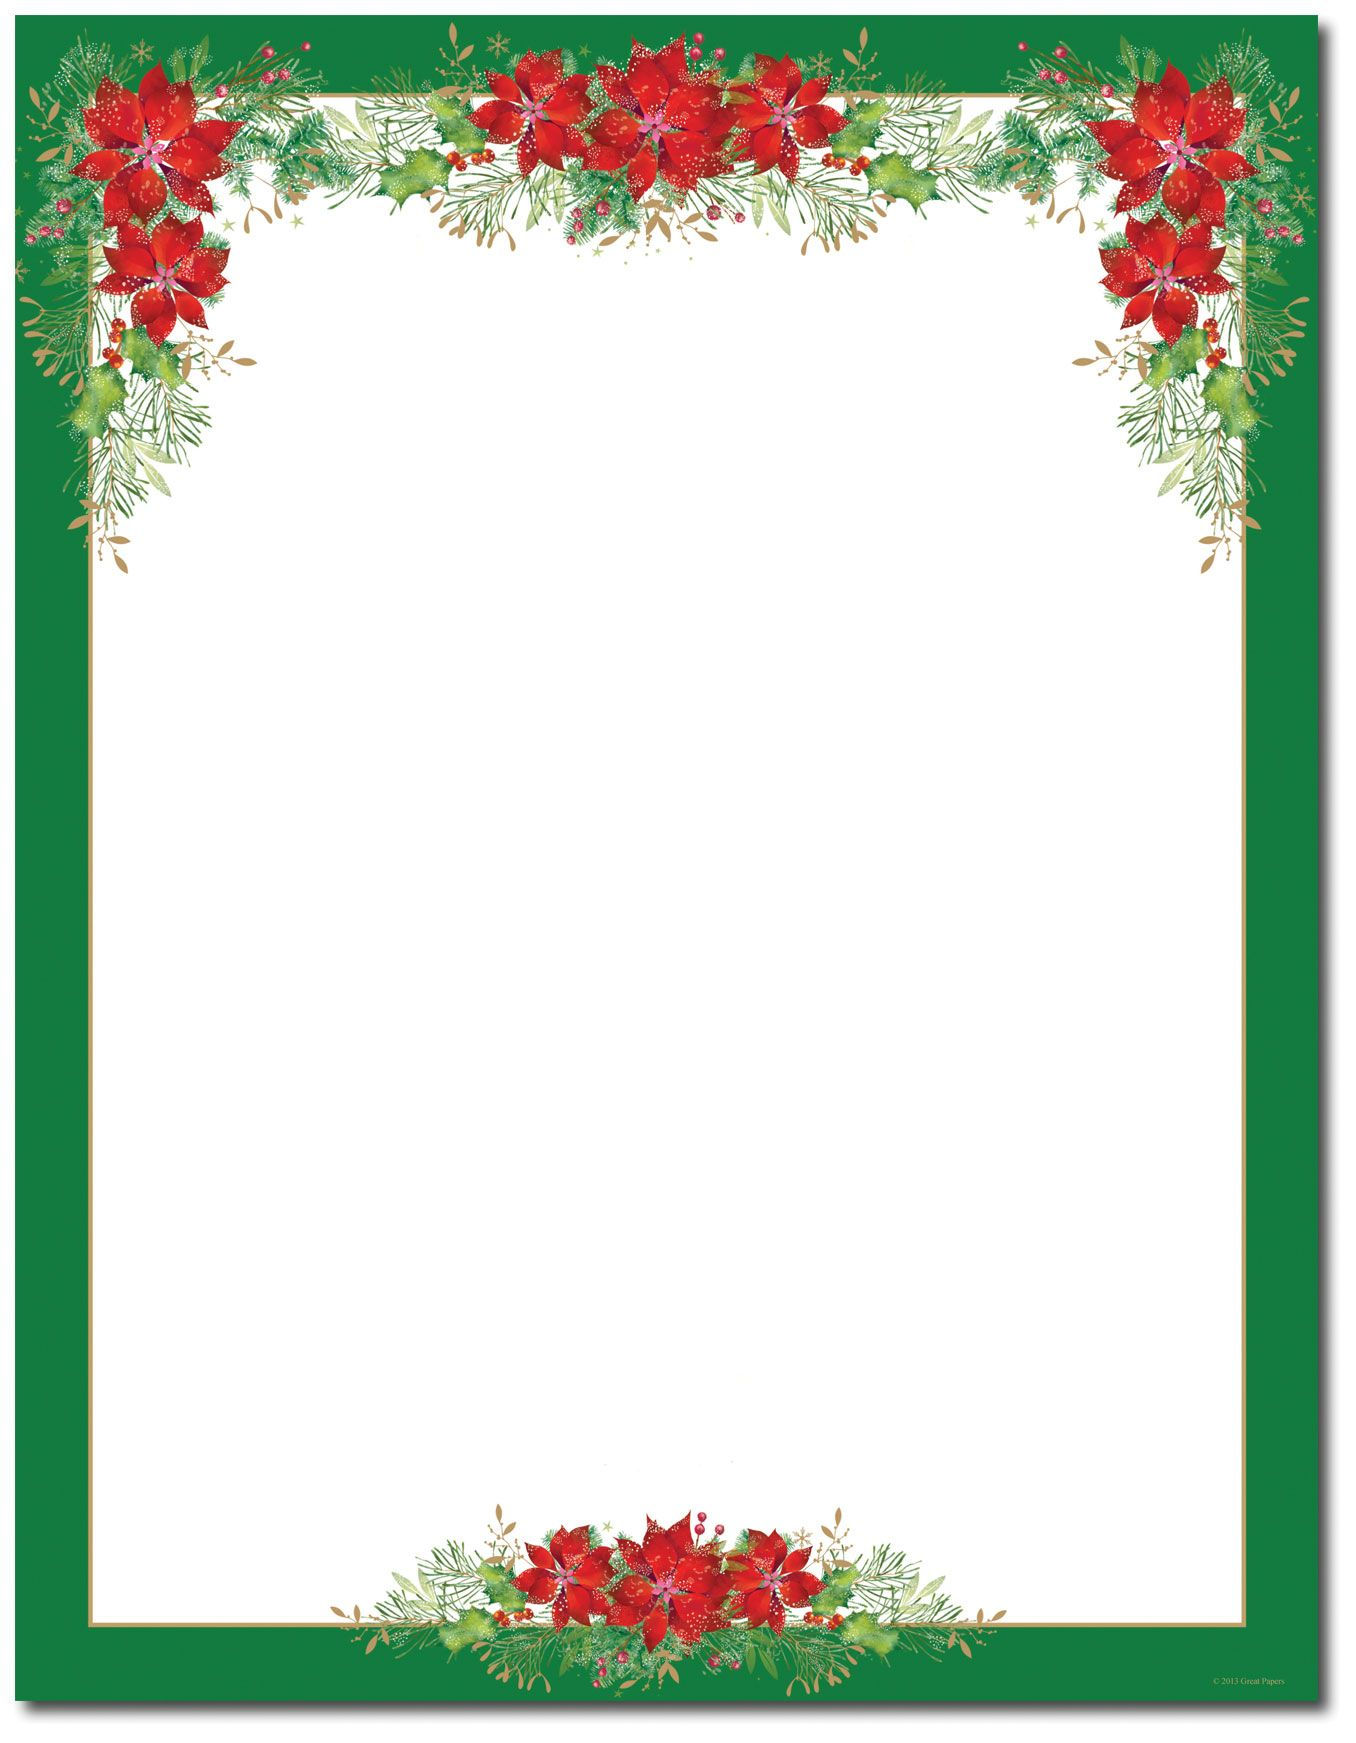 Poinsettia Valance Letterhead | Holiday Papers | Pinterest ...